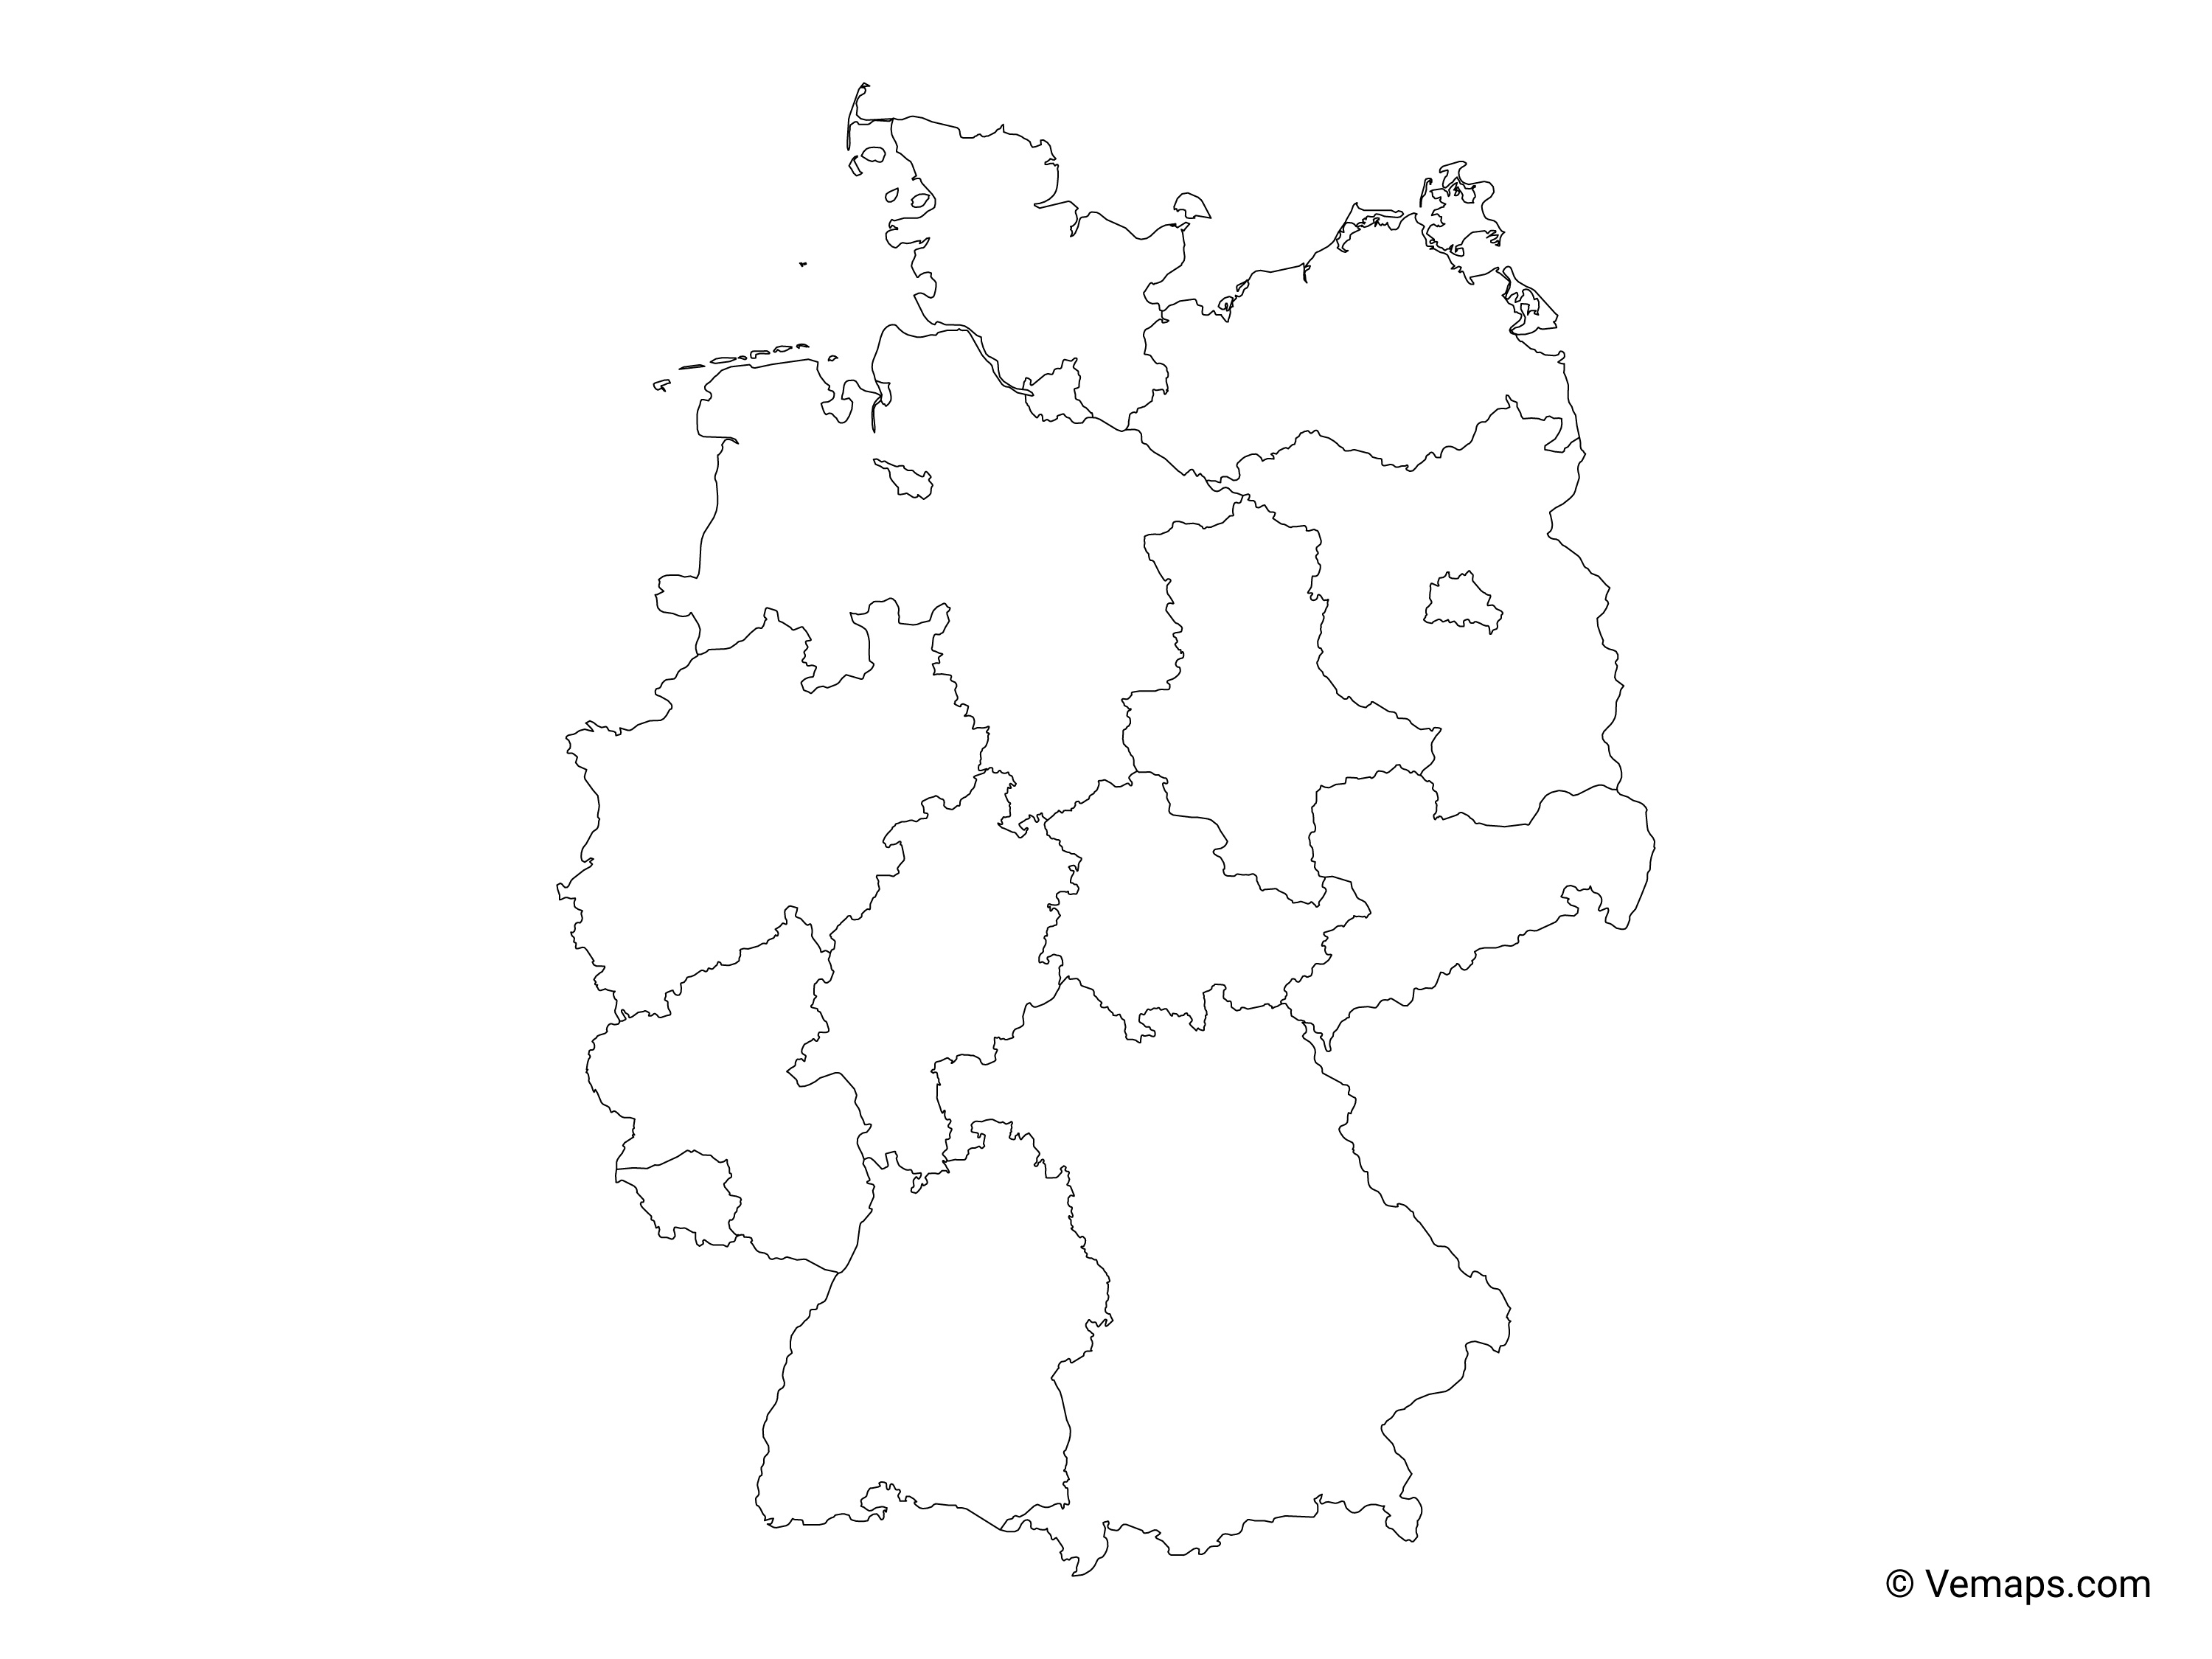 Outline Map Of Germany.Outline Map Of Germany With States Free Vector Maps